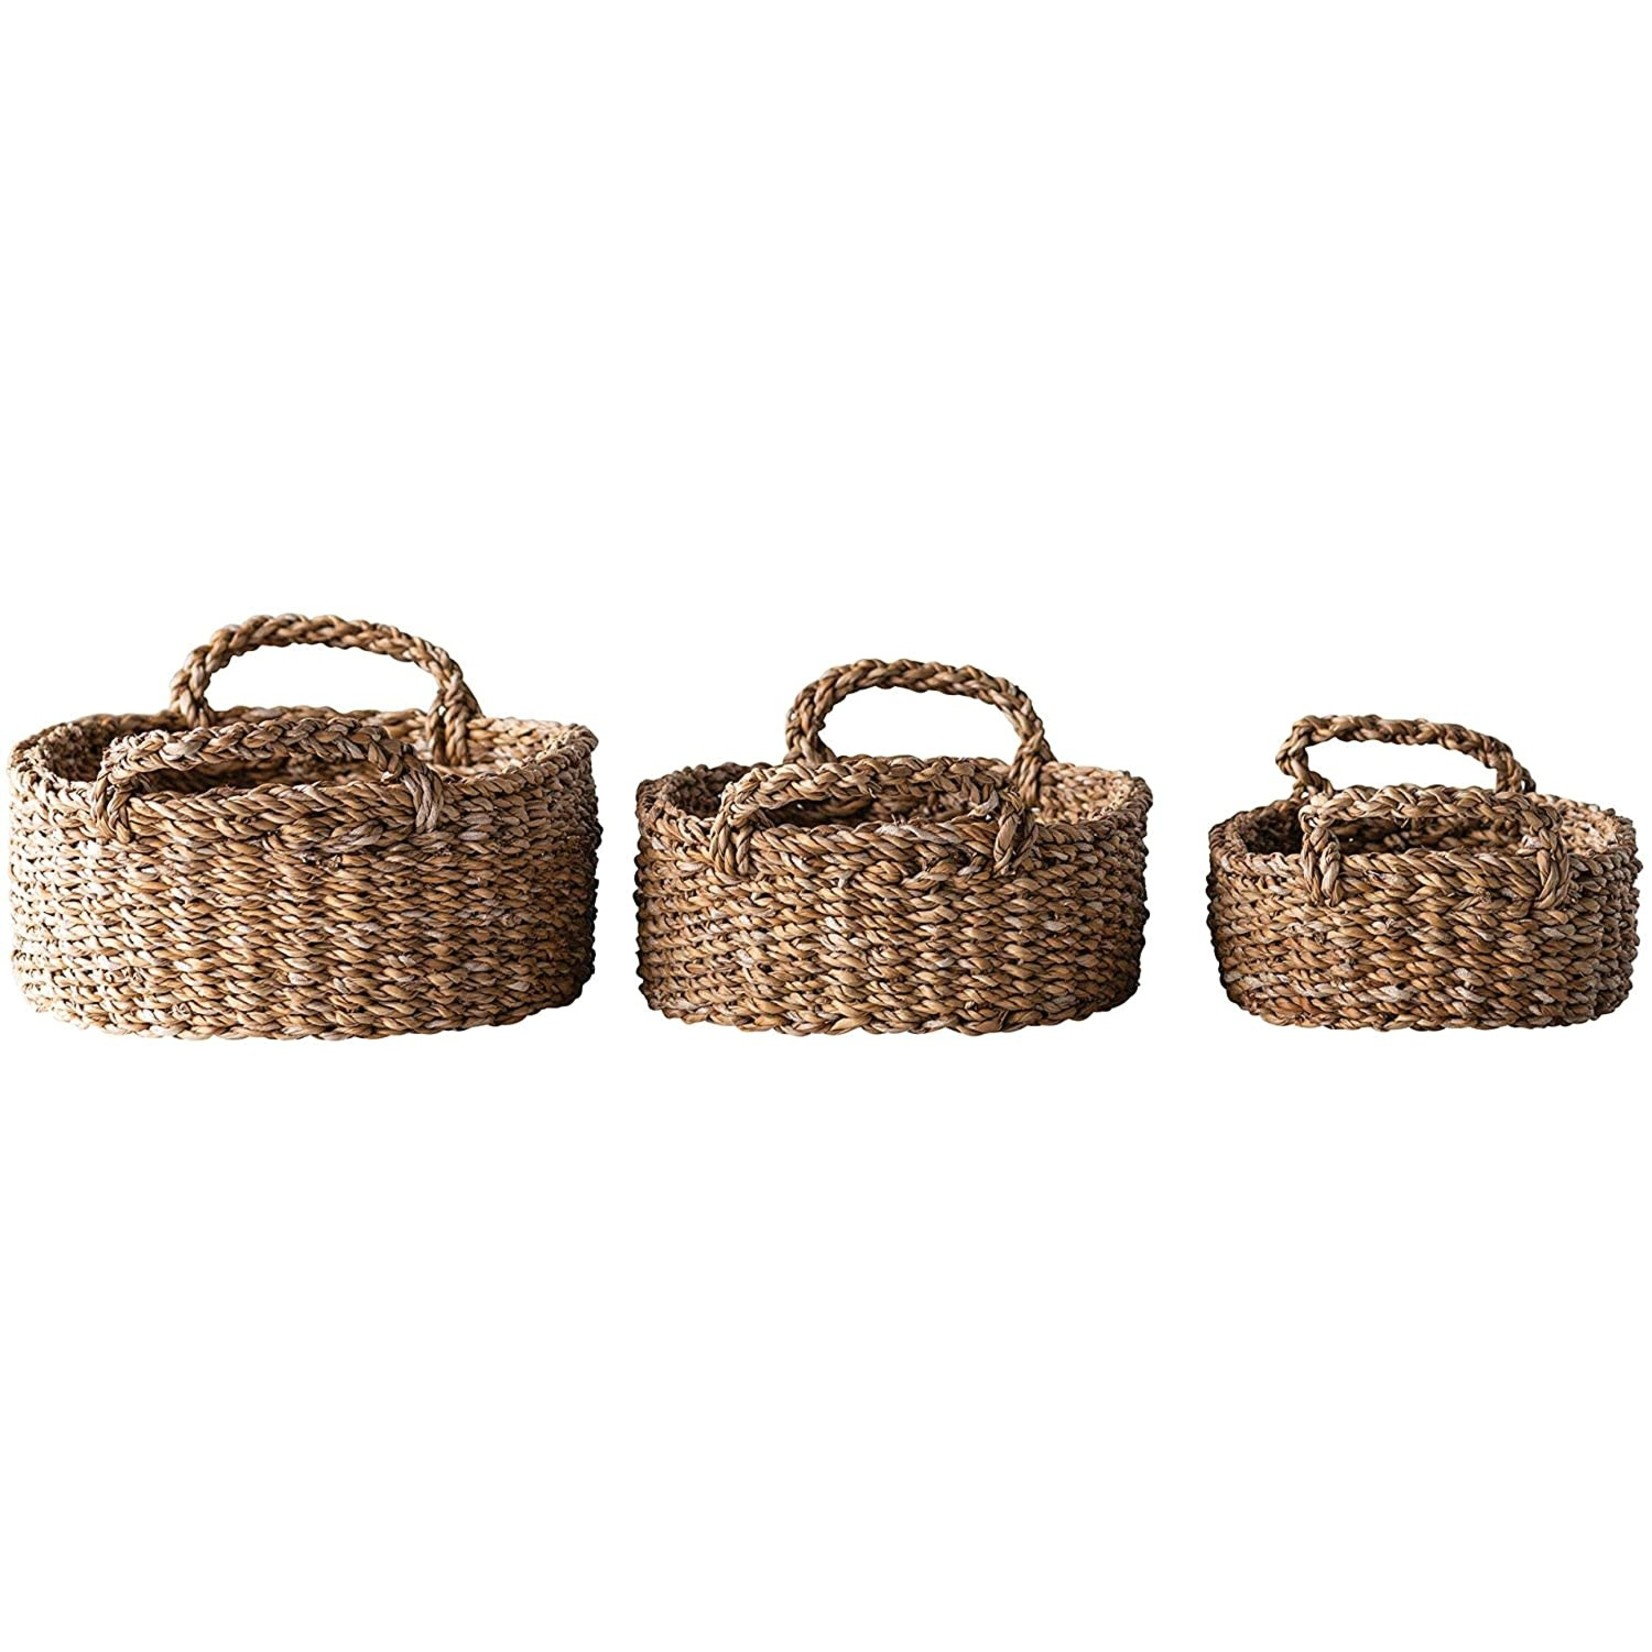 Oval Natural Woven Seagrass Baskets w/ Handles